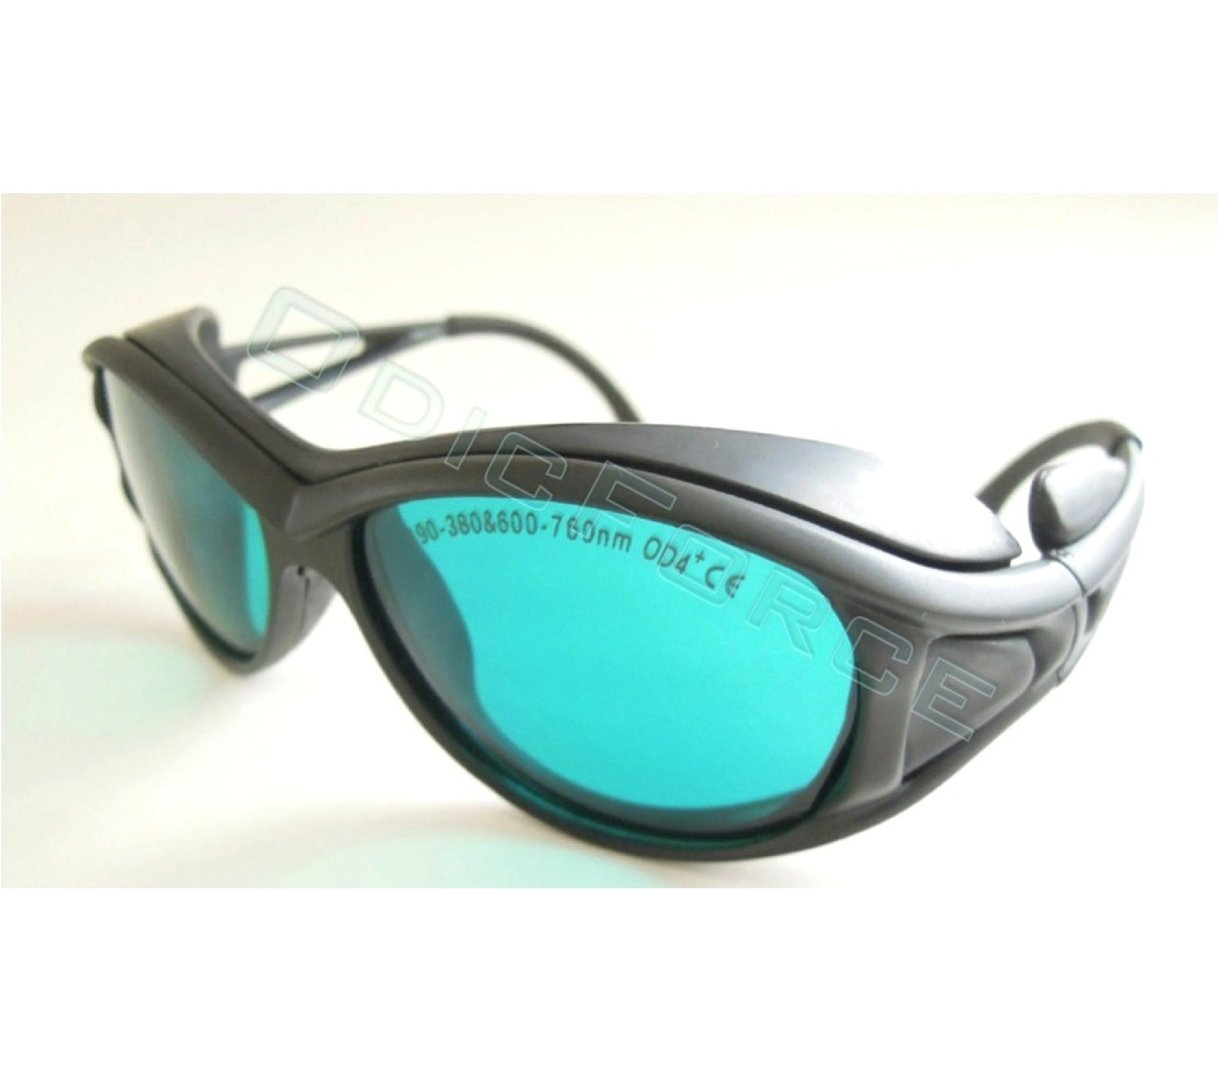 Laser Safety Goggles EP2 200-380nm and 600-760nm (Red lasers)